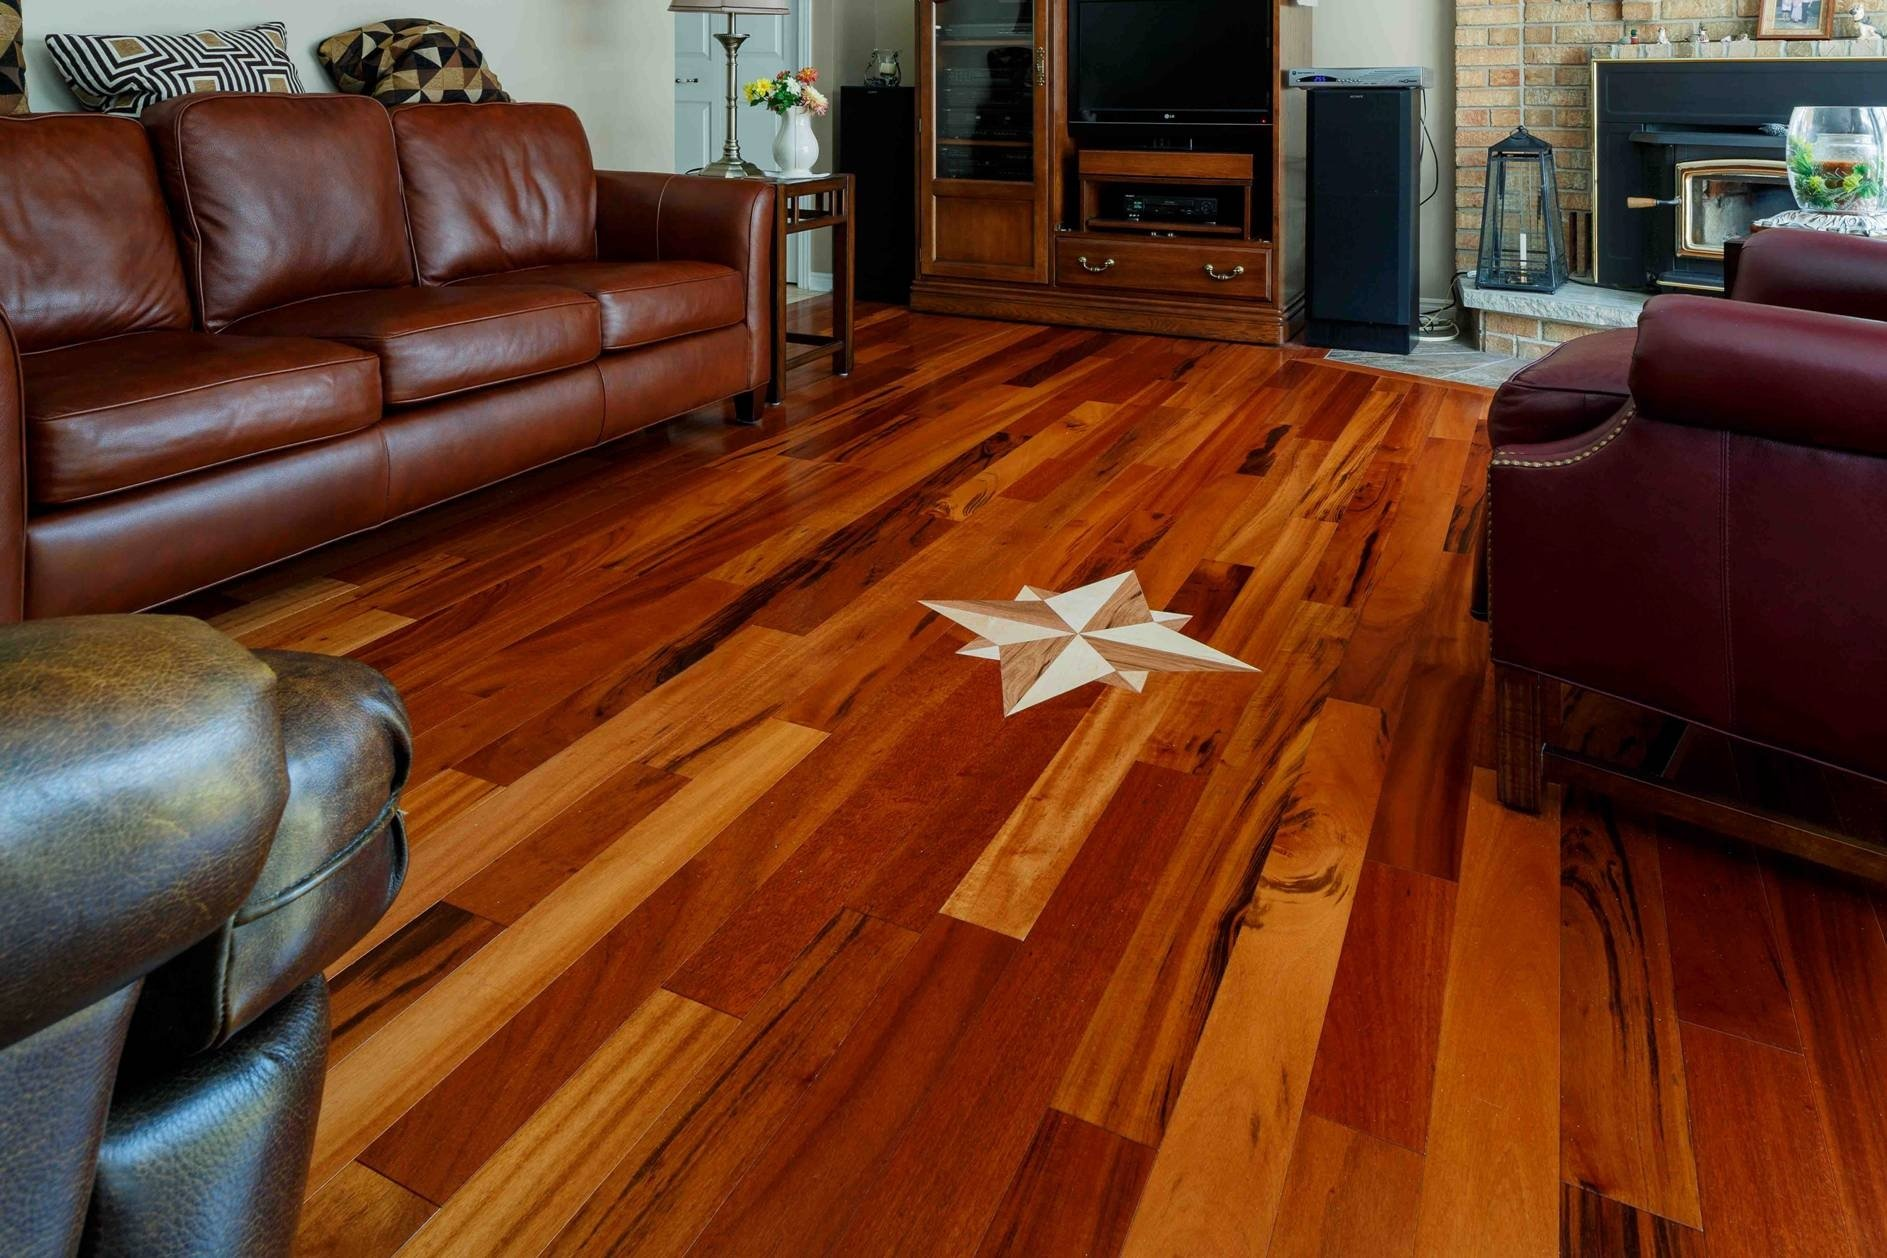 tiger wood flooring tigerwood flooring pictures OBYJKBQ